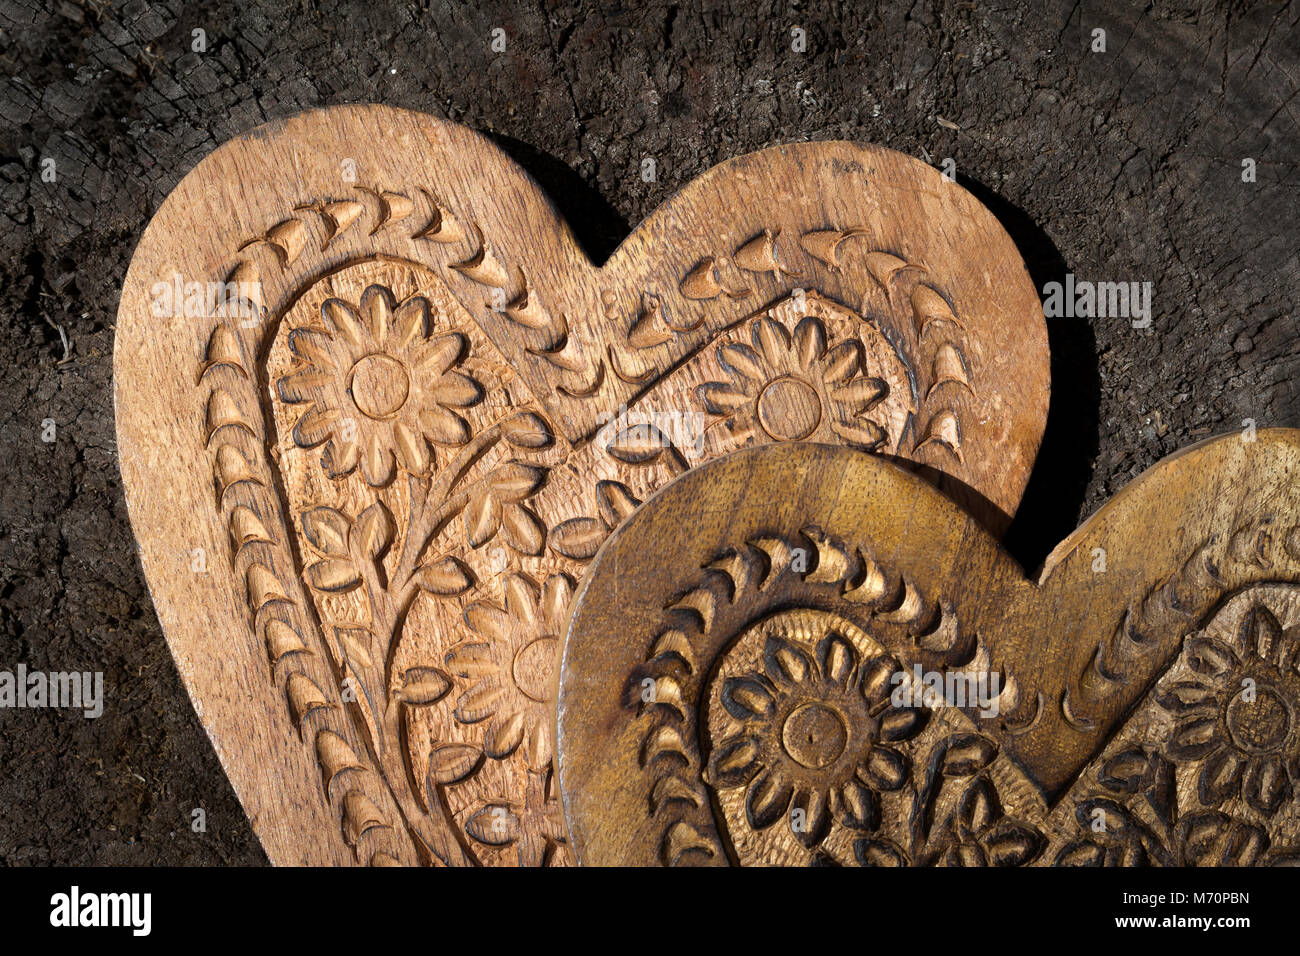 Top half of two wooden hearts, one slightly over the other, both hearts have flower and other patterns craved in - Stock Image